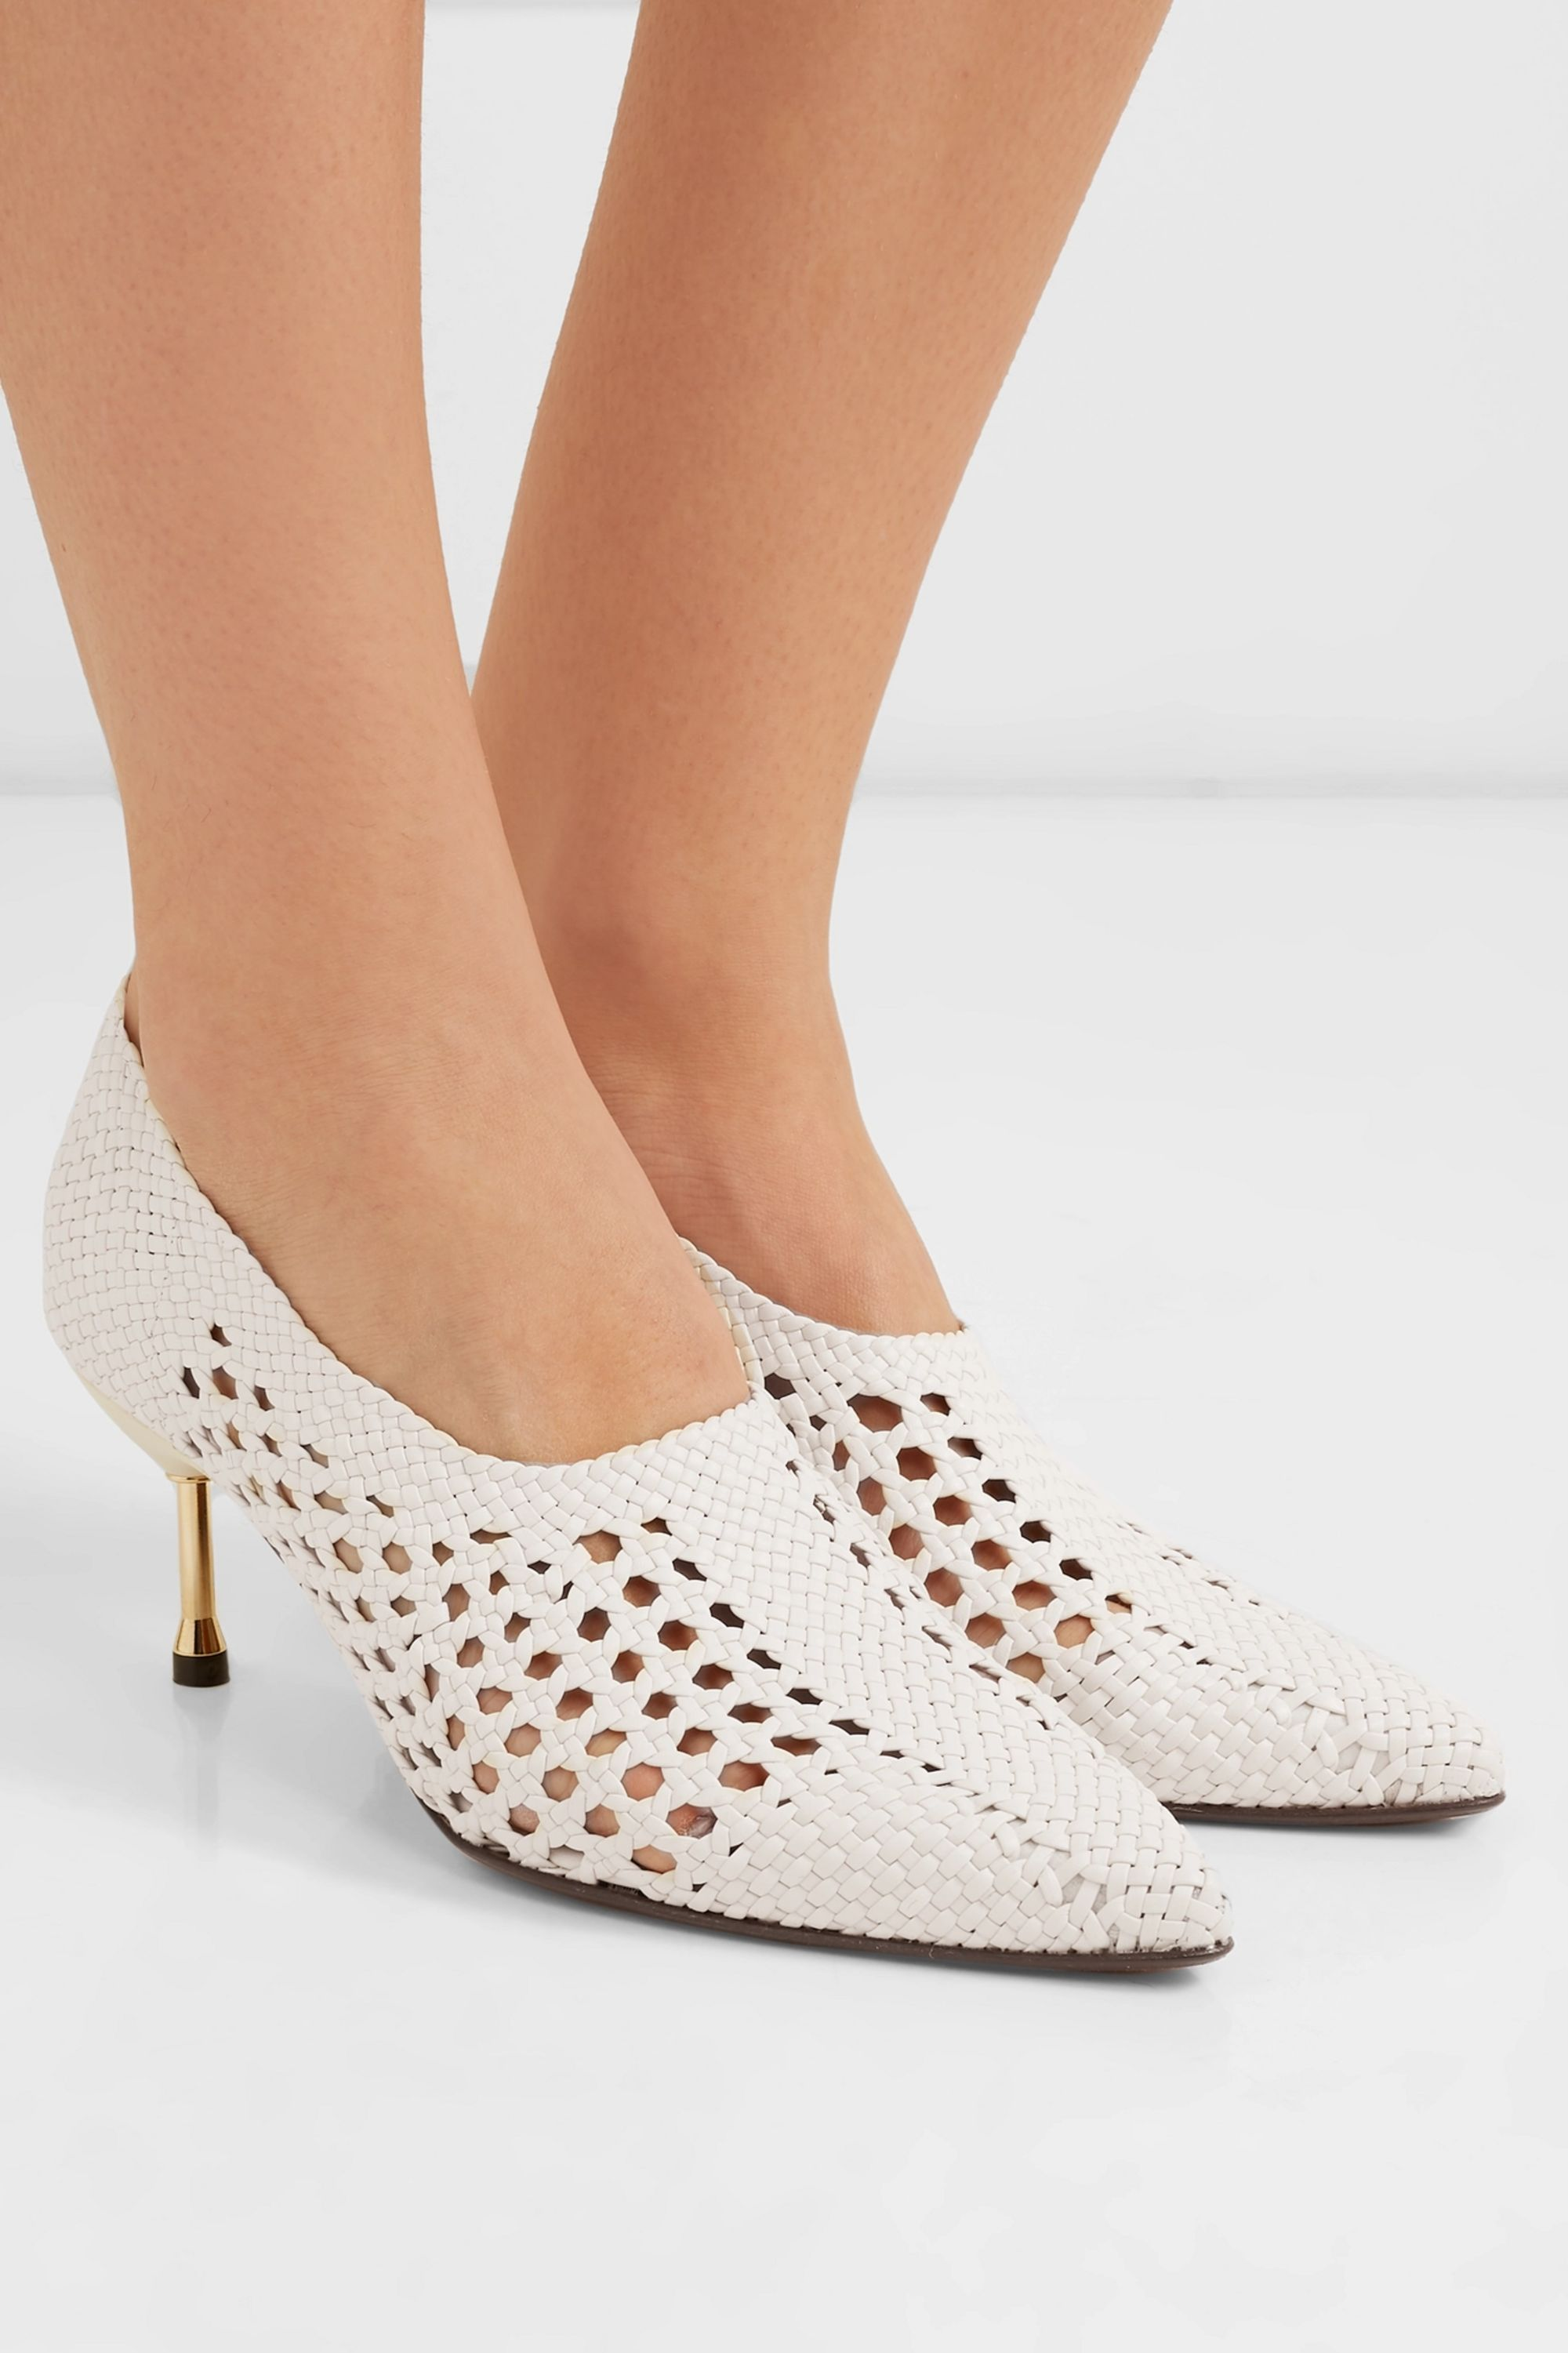 Souliers Martinez Menorca woven leather pumps